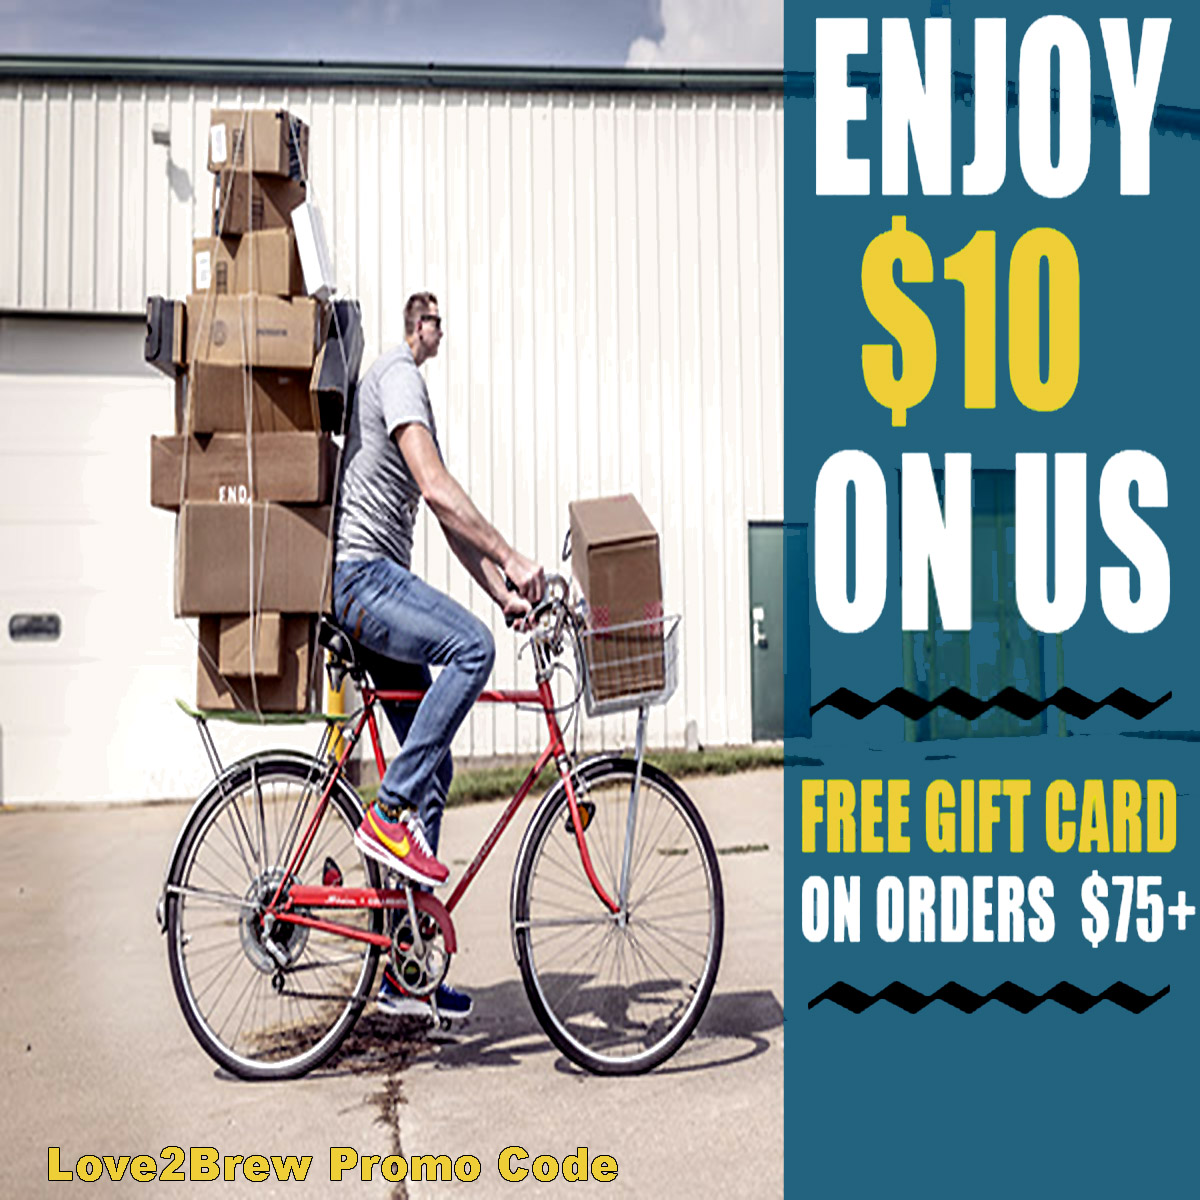 Love2Brew Get A Free $10 Giftcard When You Spend $75 and use this Love 2 Brew Promo Code Coupon Code